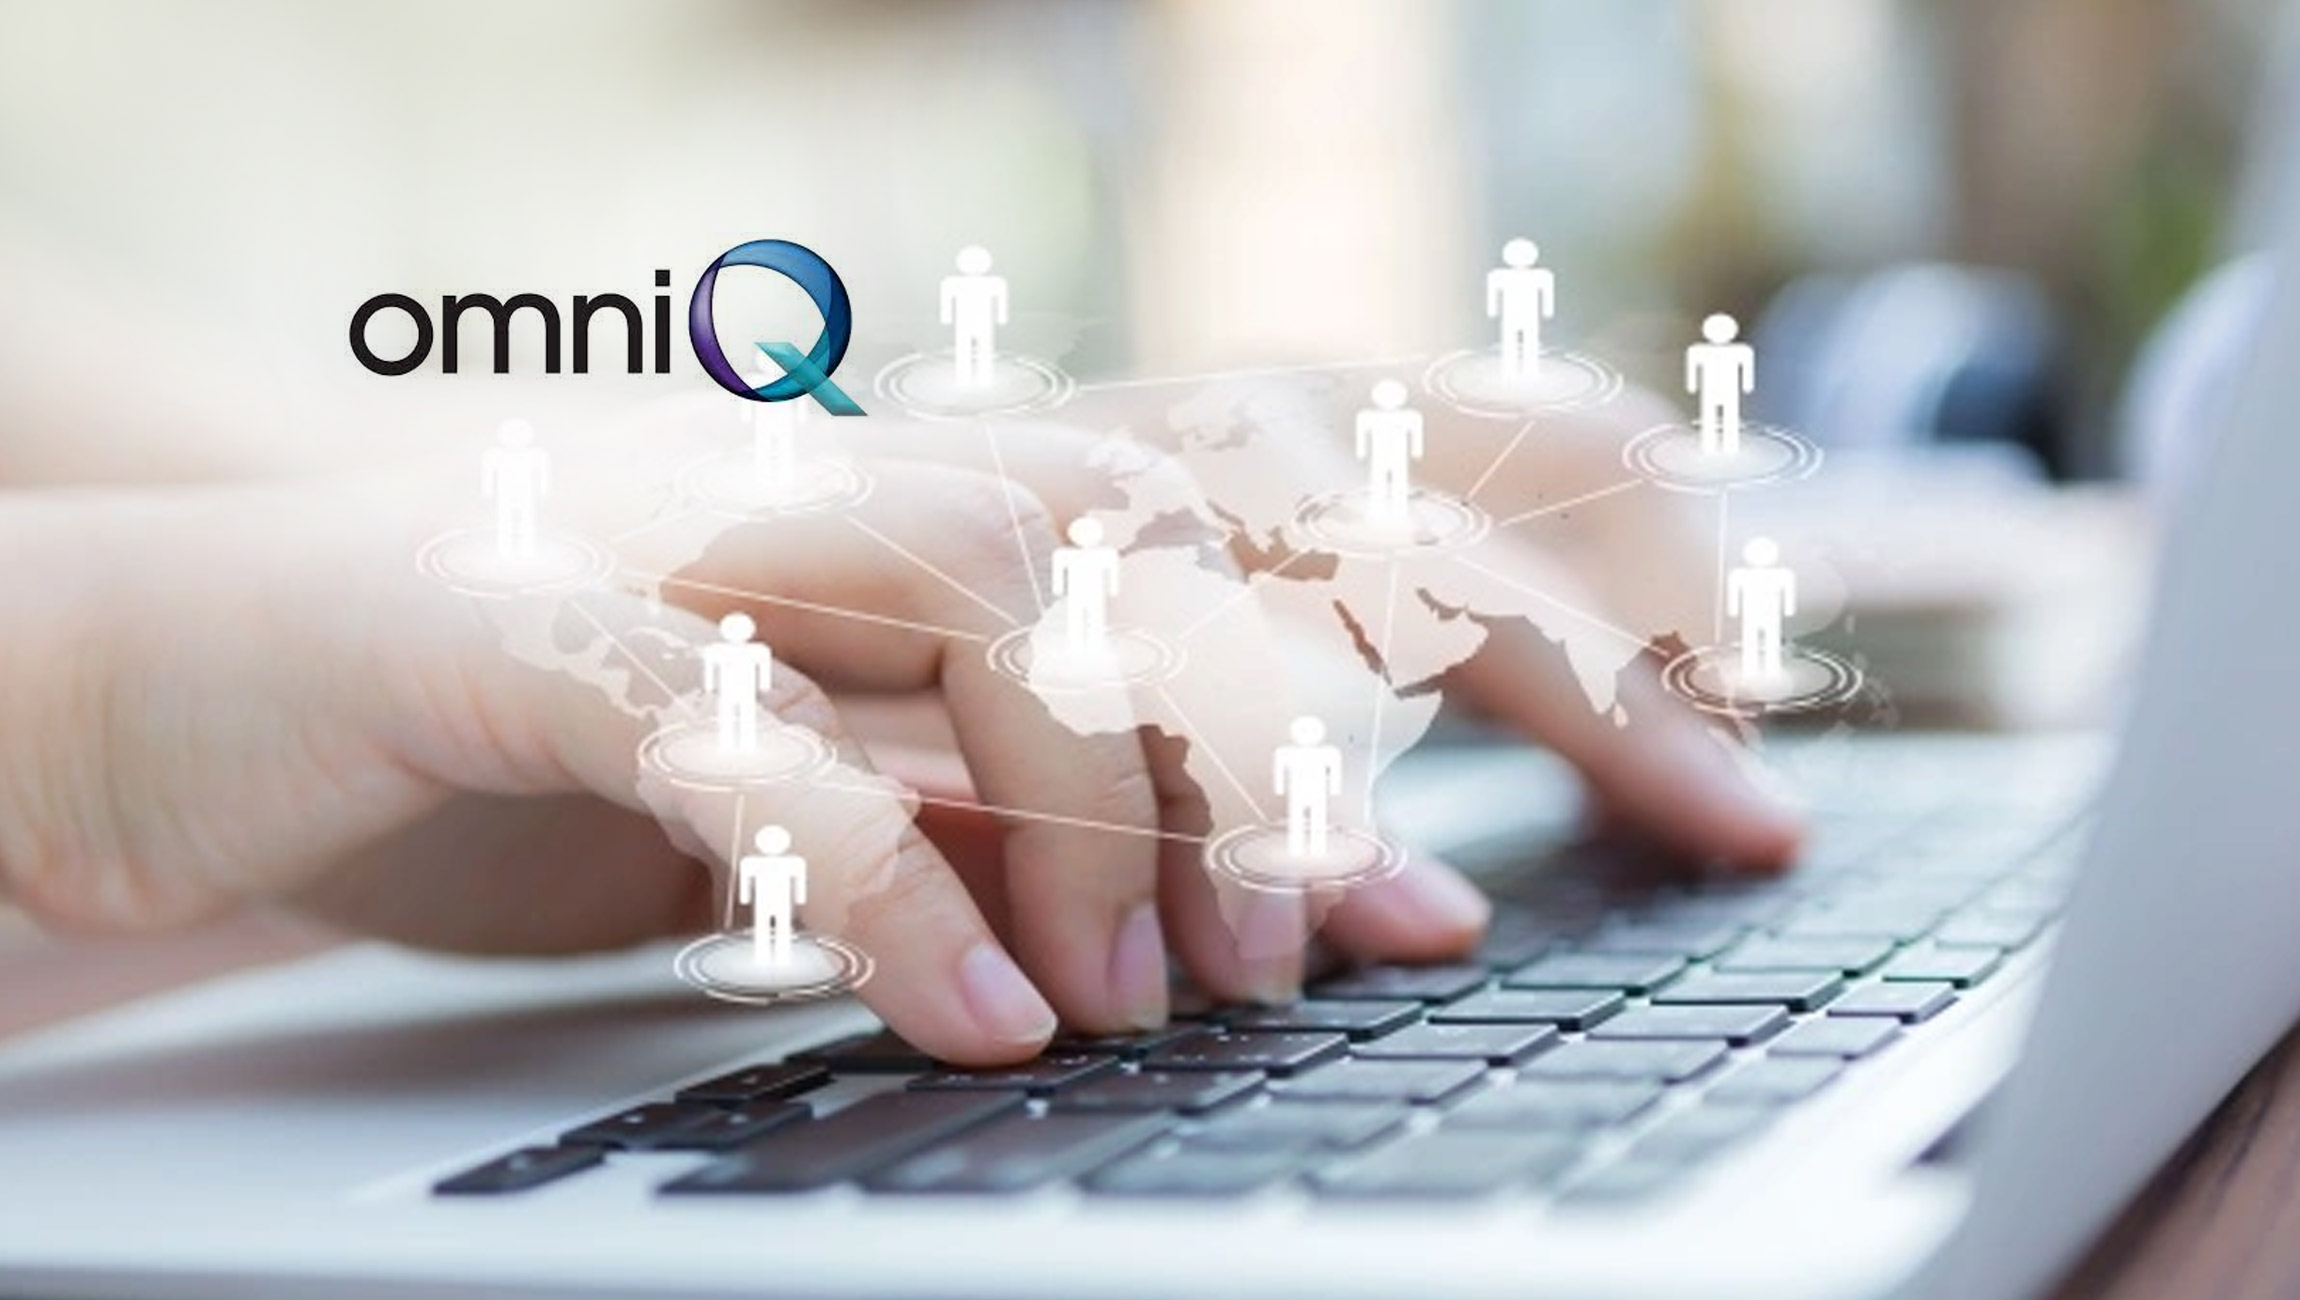 OMNIQ-Receives-_1.8-Million-Purchase-Order-for-IoT-Contactless--Data-Collection-Solution-from-a-Fortune-500-Leading-IT-Supply-Chain-Provider